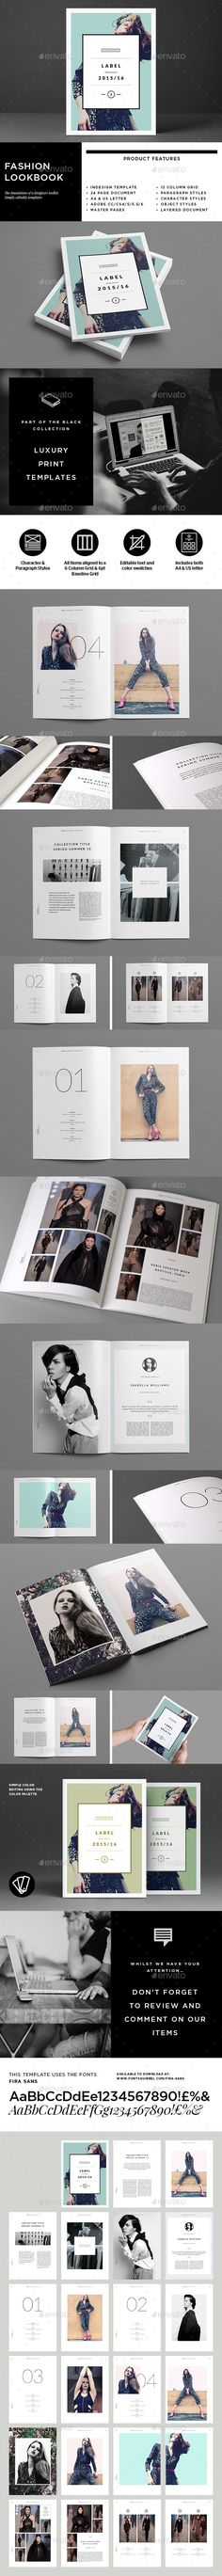 The Lookbook template is an Indesign brochure template for individuals or companies designing a seasonal lookbook or catalog.